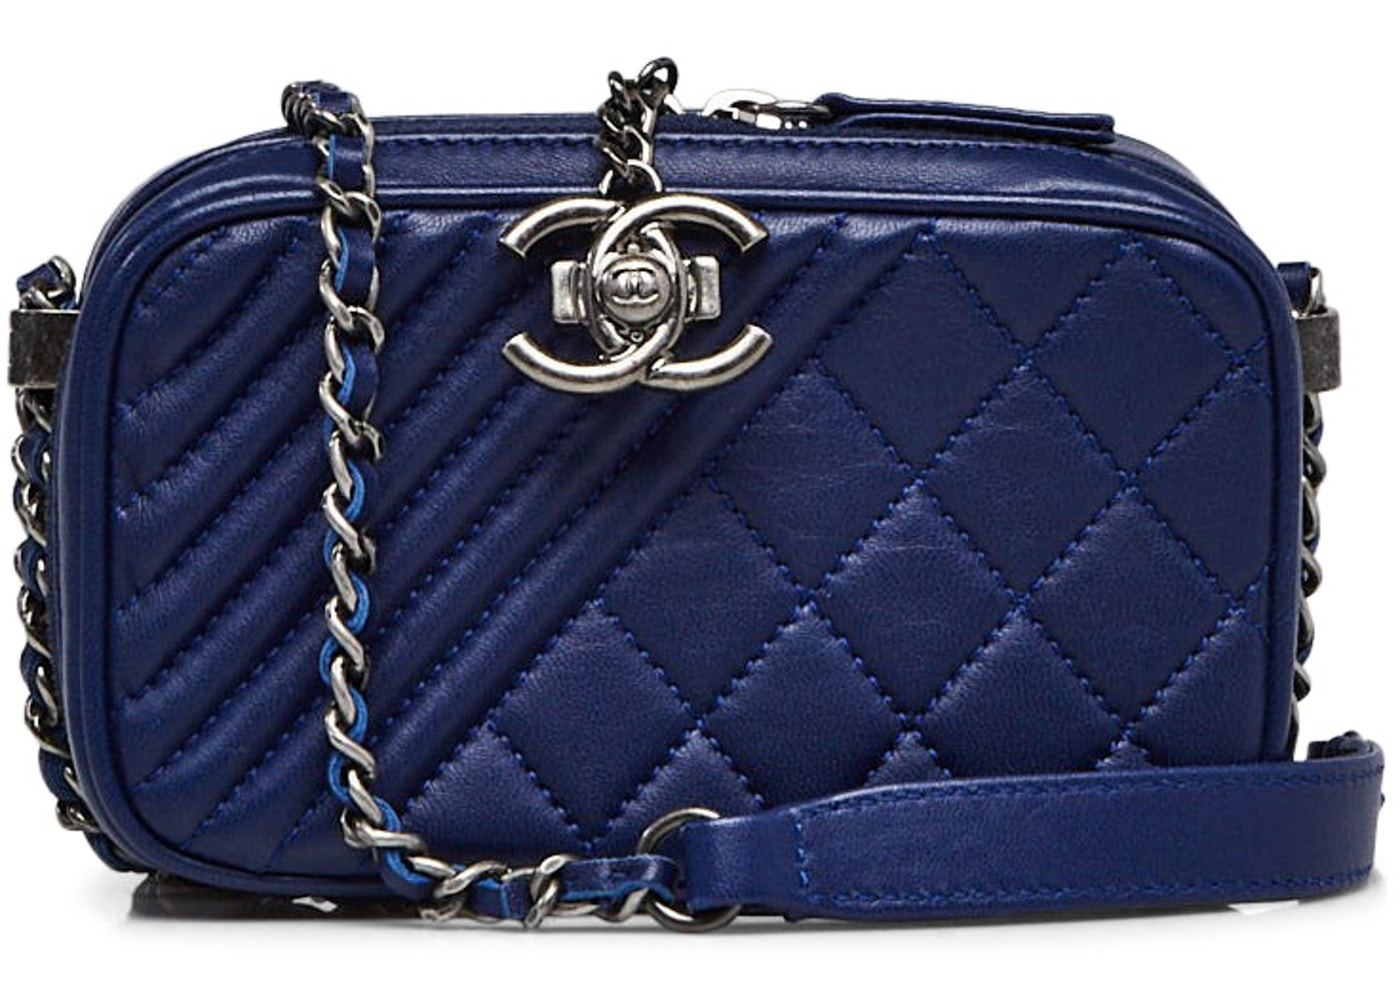 fba1324736c5 Buy & Sell Chanel Camera Handbags - Most Popular